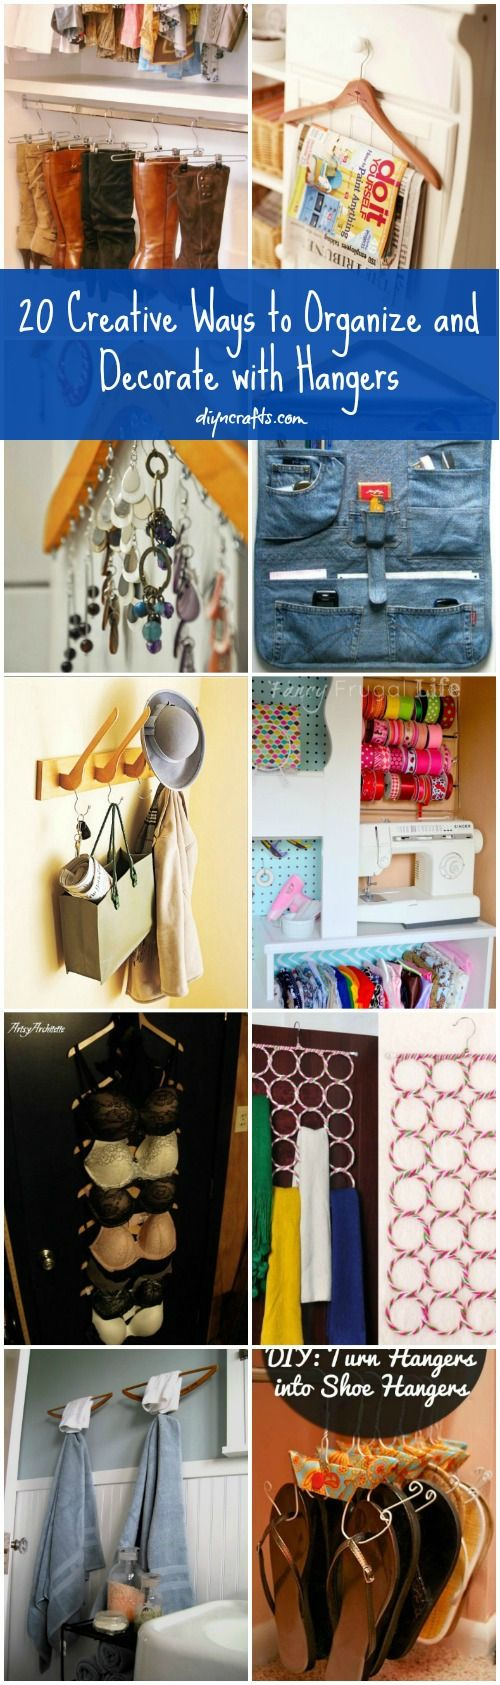 41 Best Storage Images On Pinterest Organizers Diy Kid Jewelry The Olive House Gantungan Baju X Hangar 20 Creative Ways To Organize And Decorate With Hangers Crafts